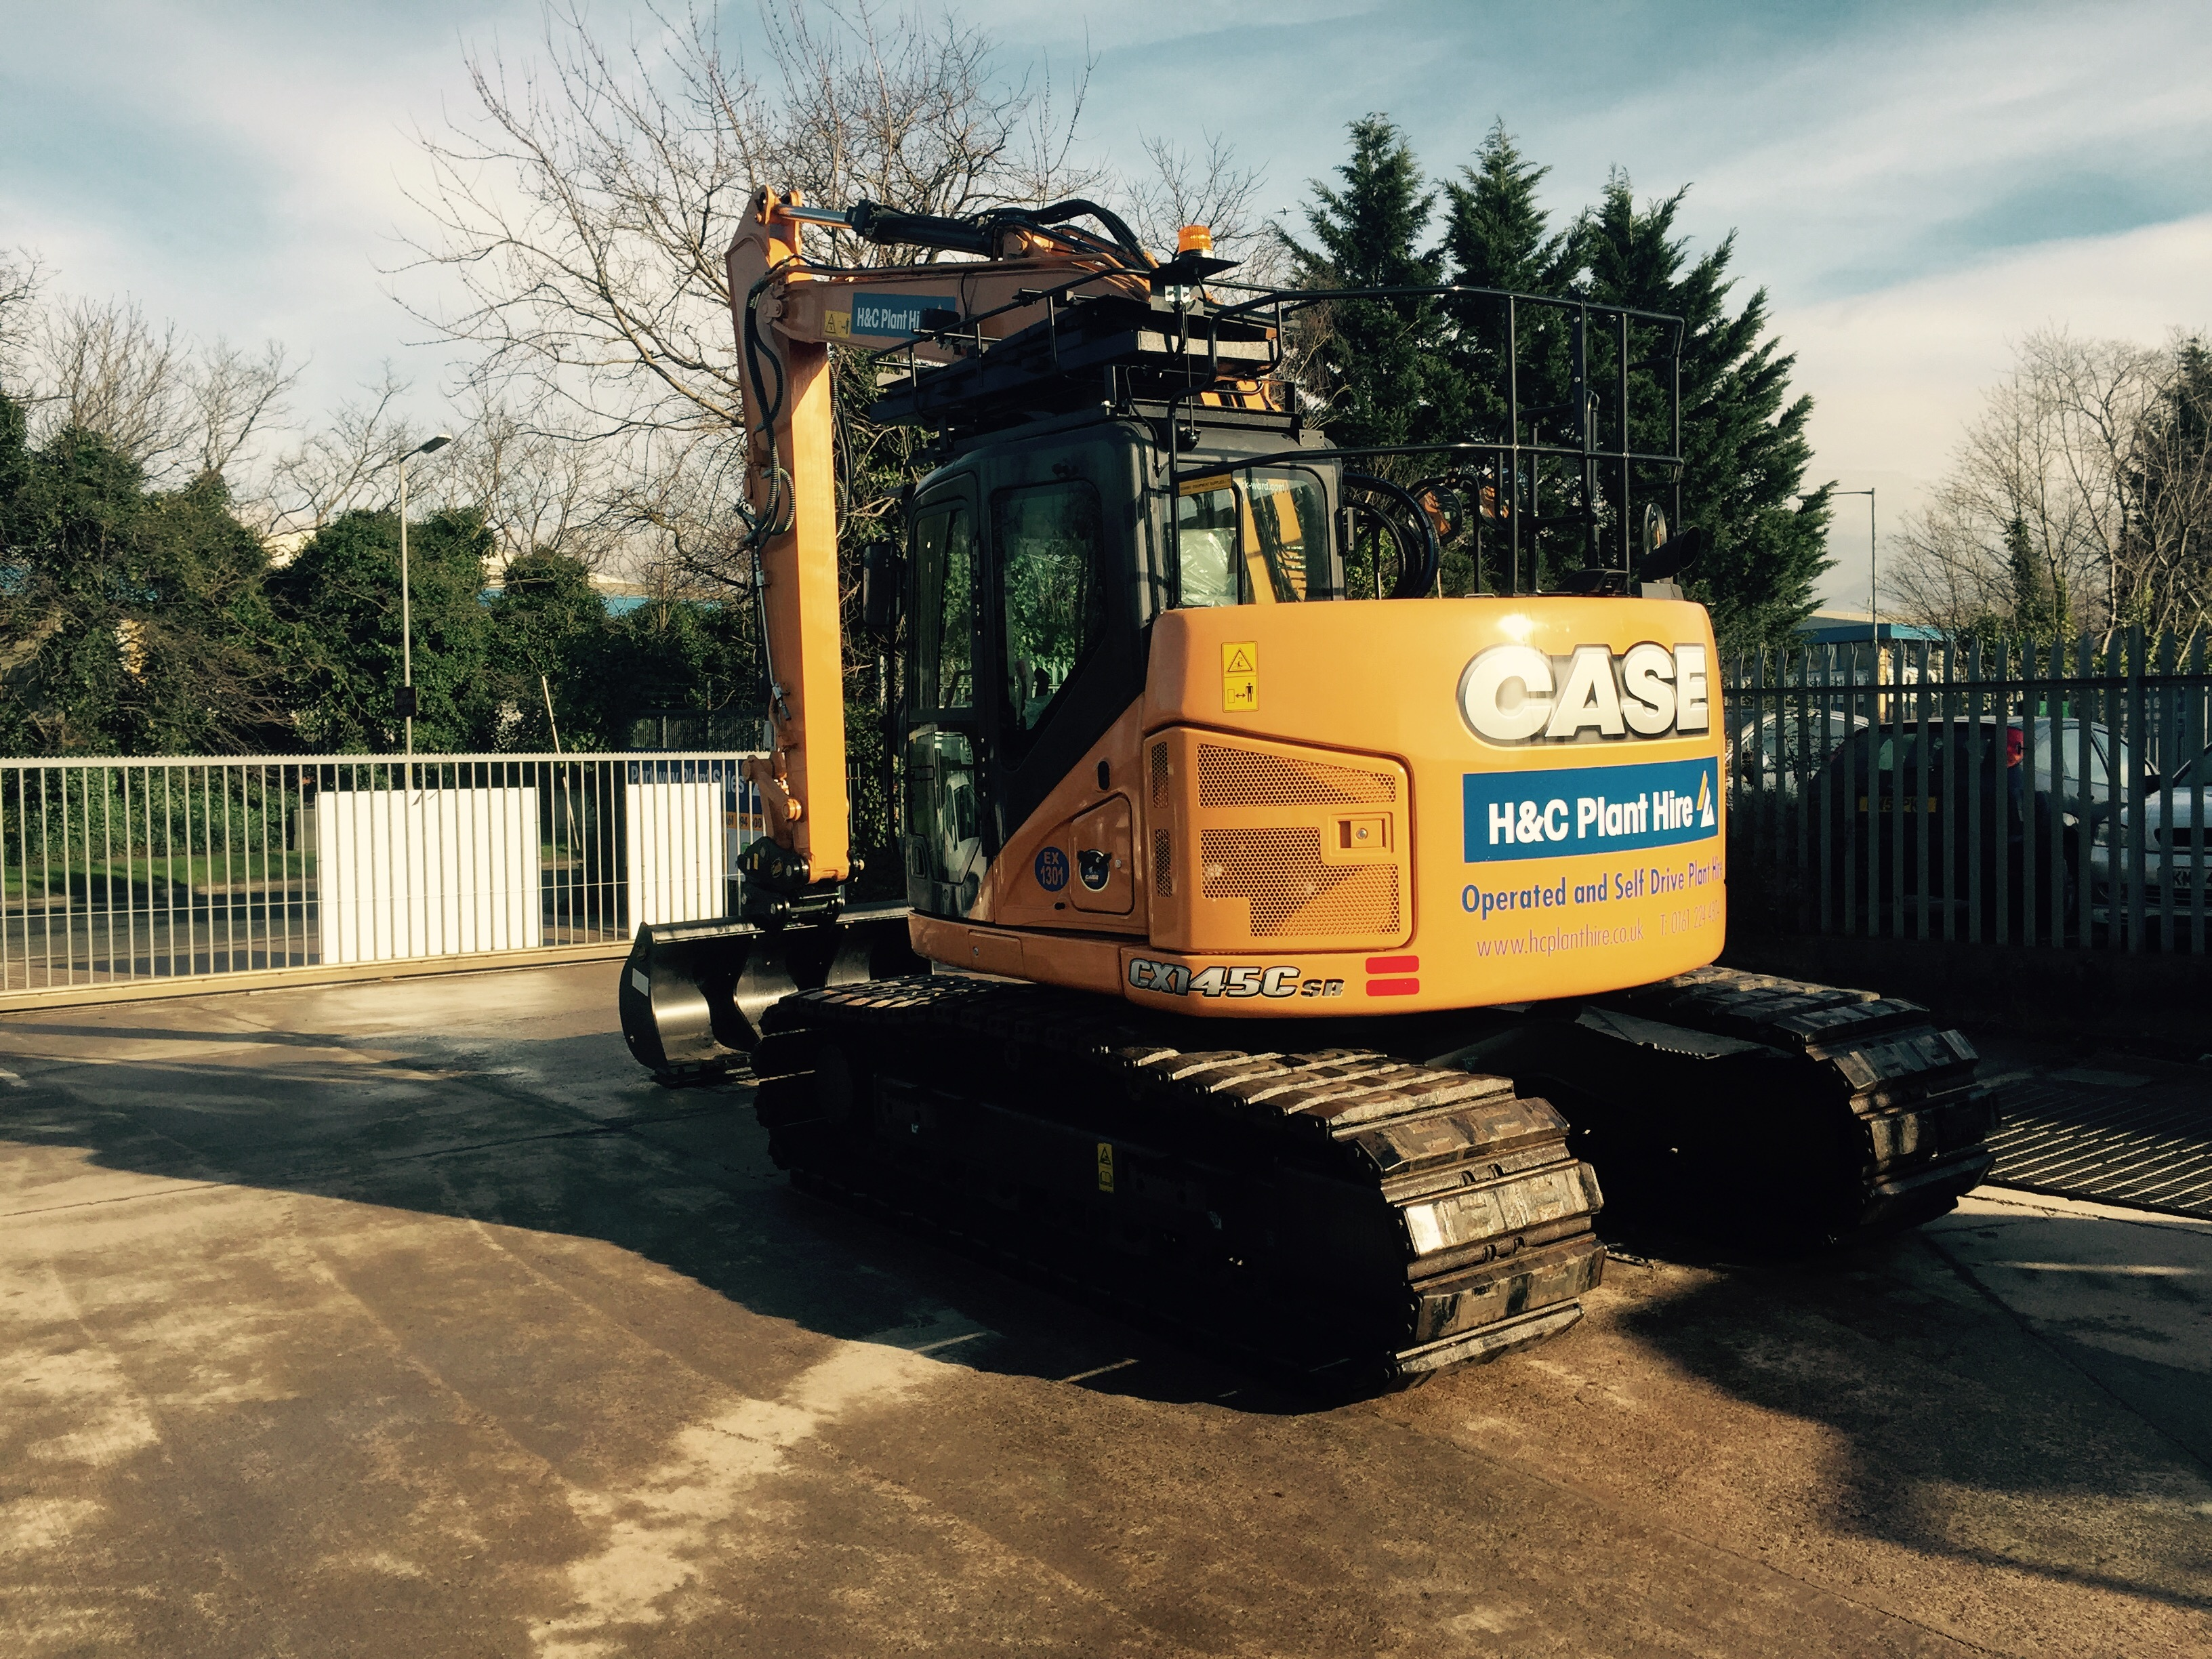 H&C Invest in brand new 13 ton zero tail excavator, available for hire now, Feb 2016!